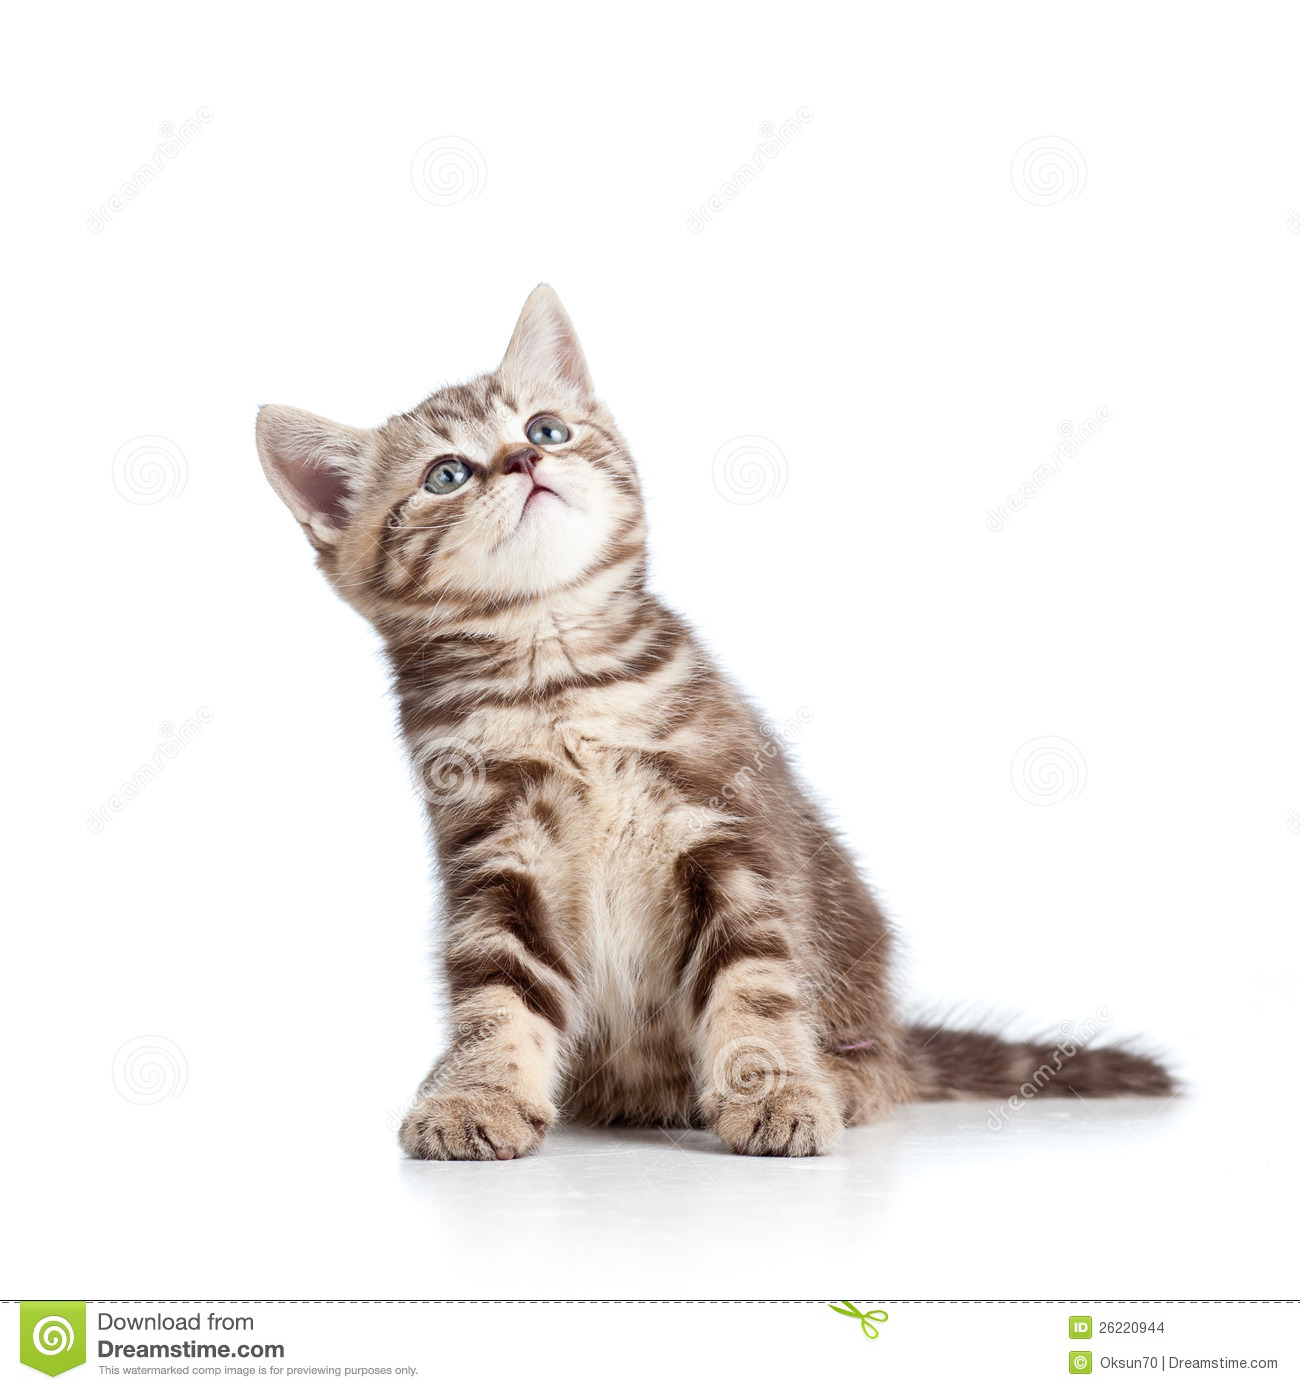 Charming Cat Kitten Looking Up Stock Photo Image Of Caucasian Pedigree 26220944